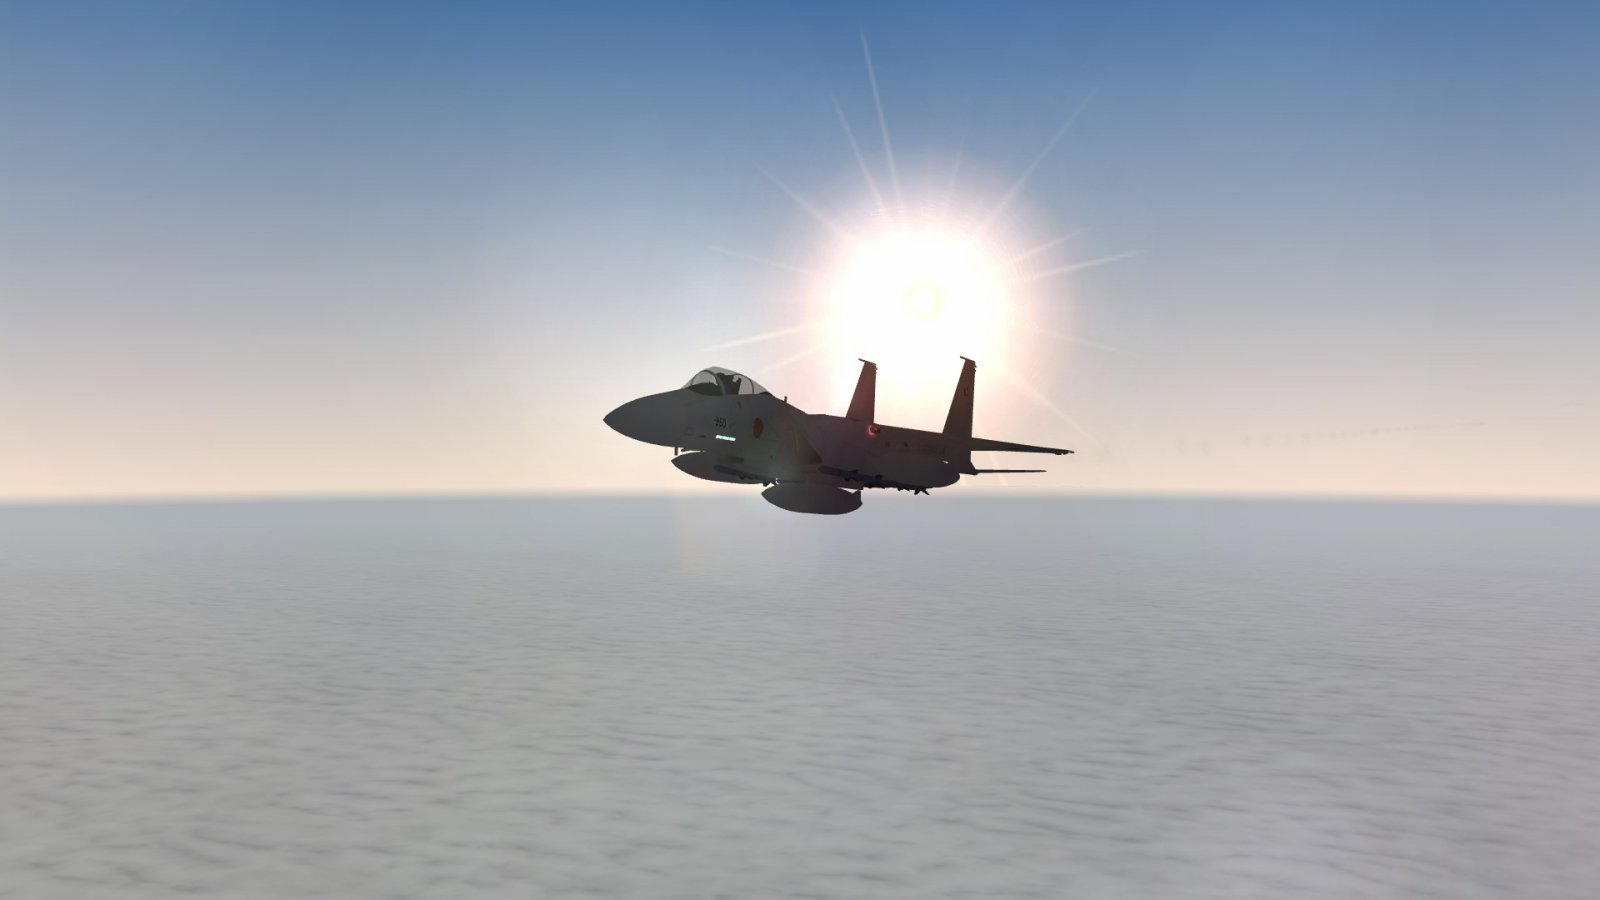 F-15J Eagle and the Low Sun